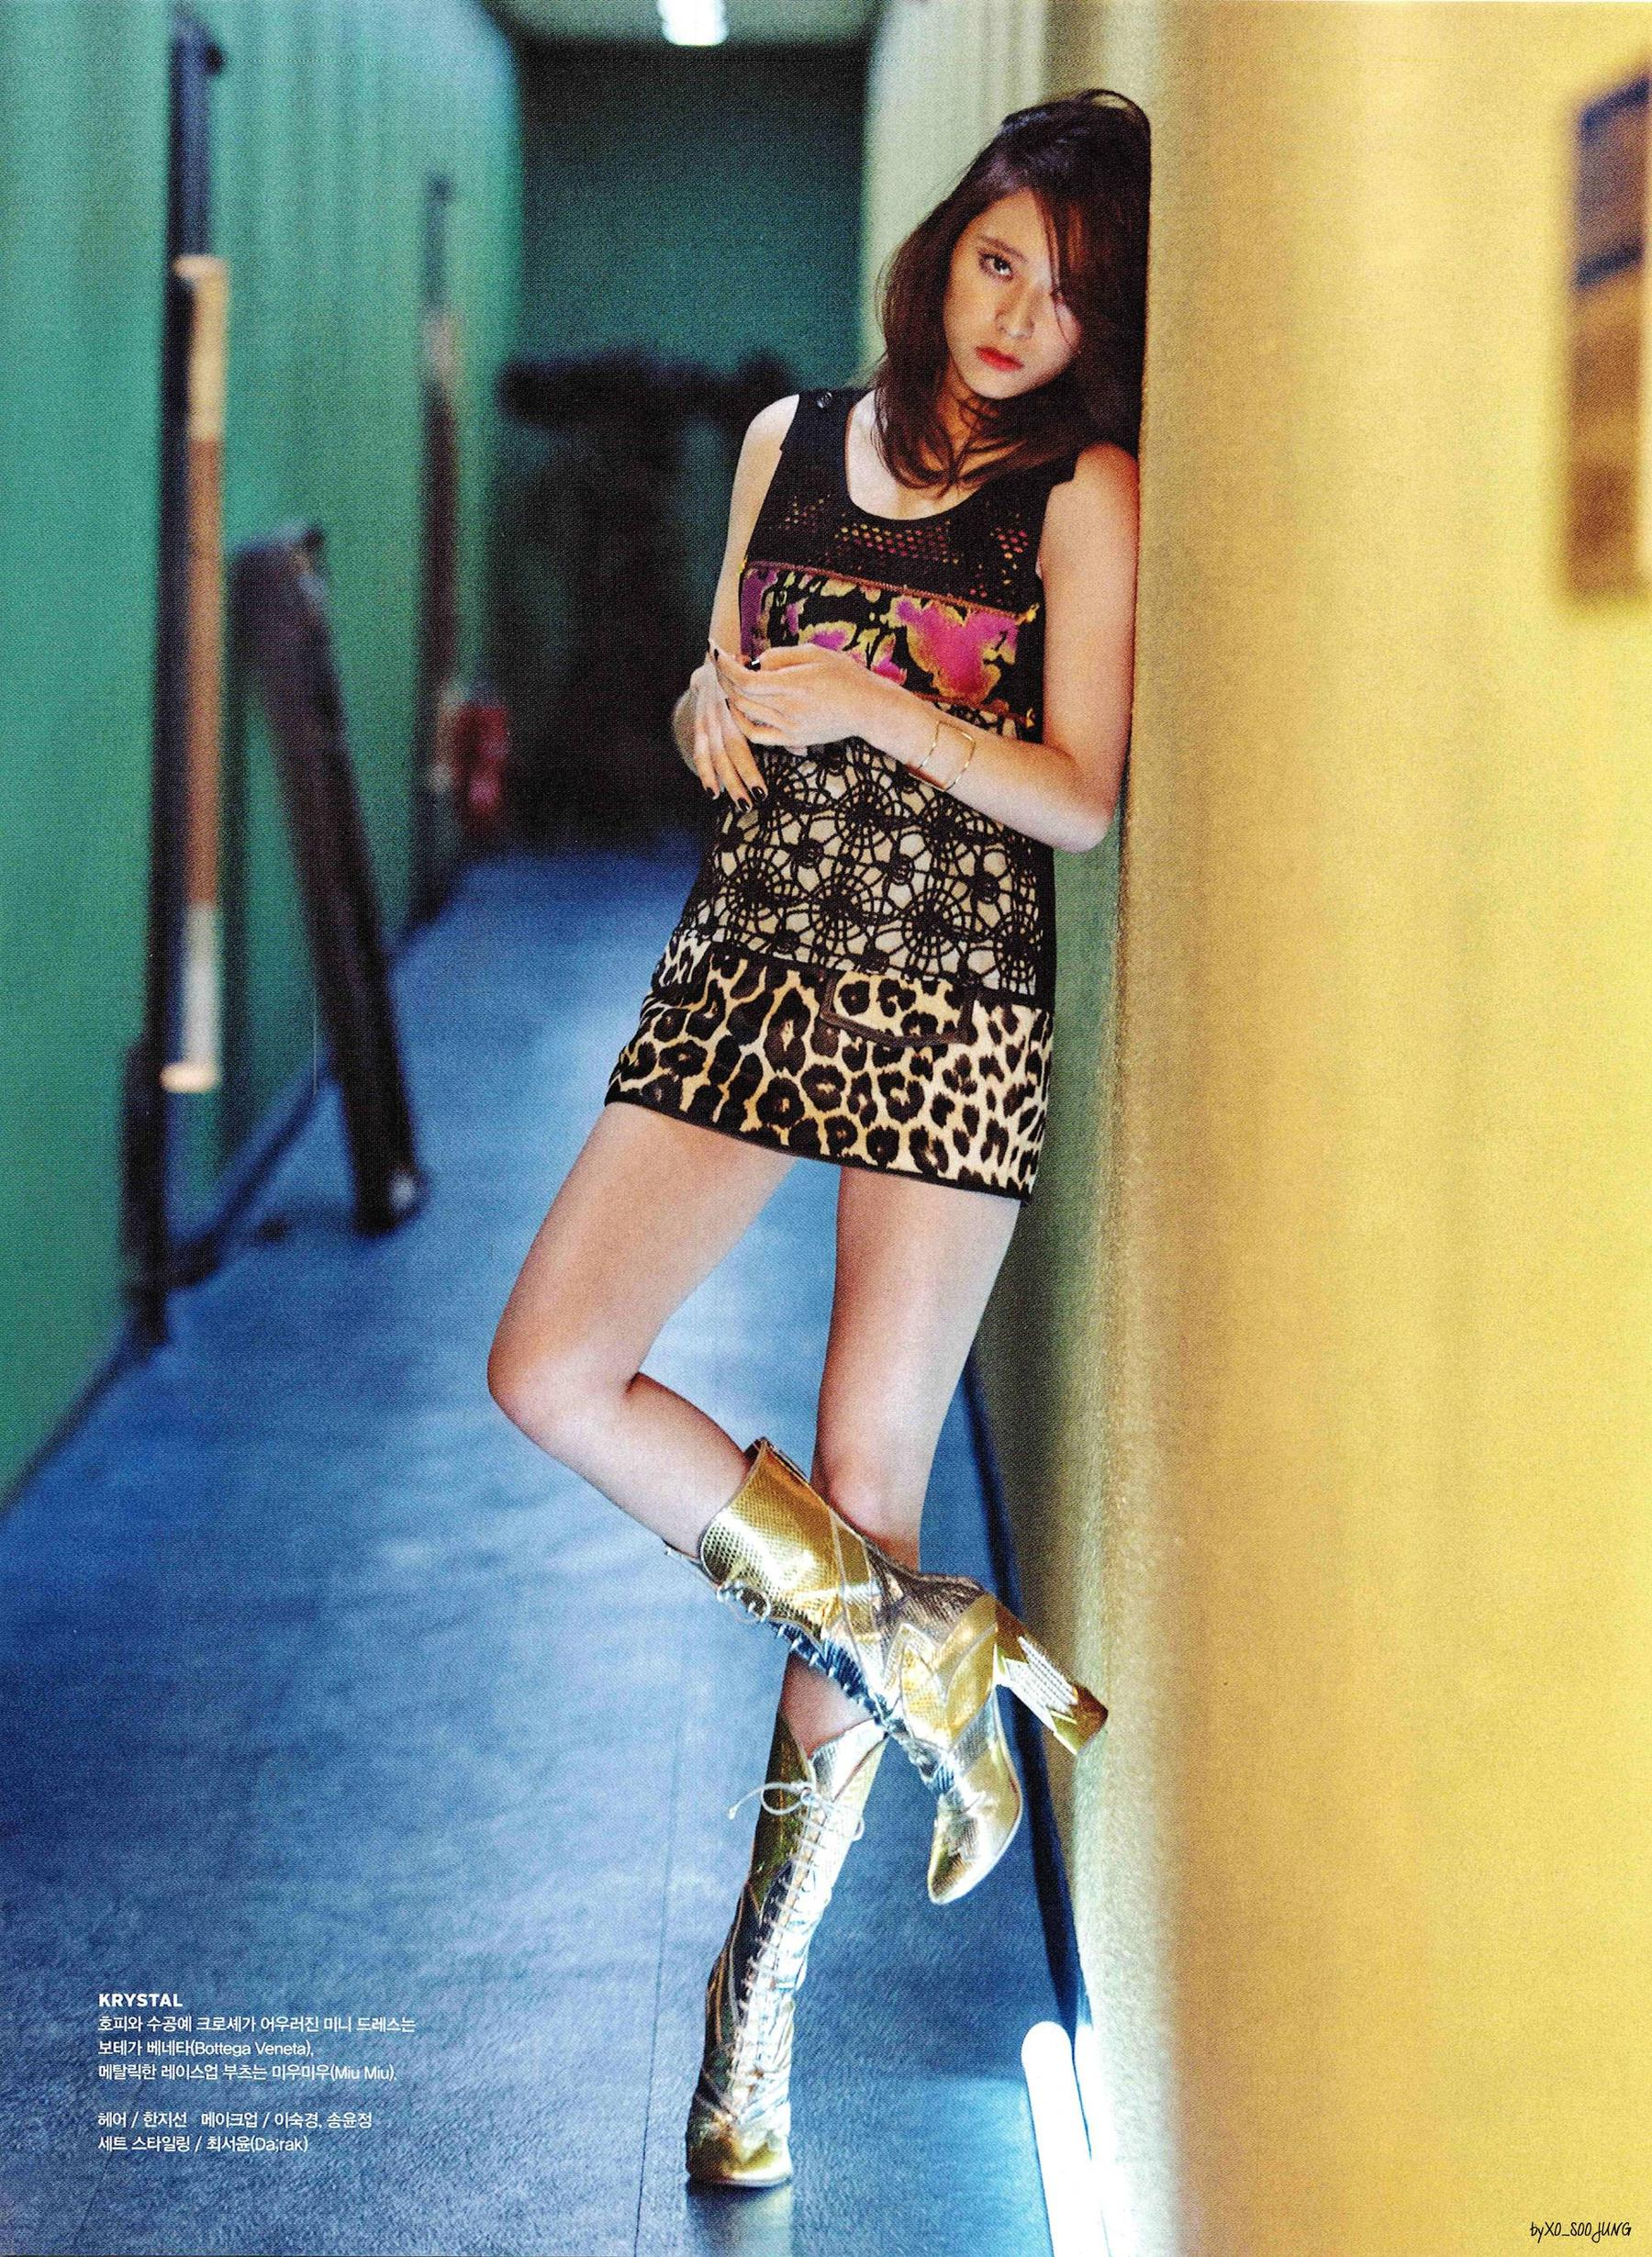 Asiachan F Krystal Jung Android Iphone Wallpaper 1115836 Hd